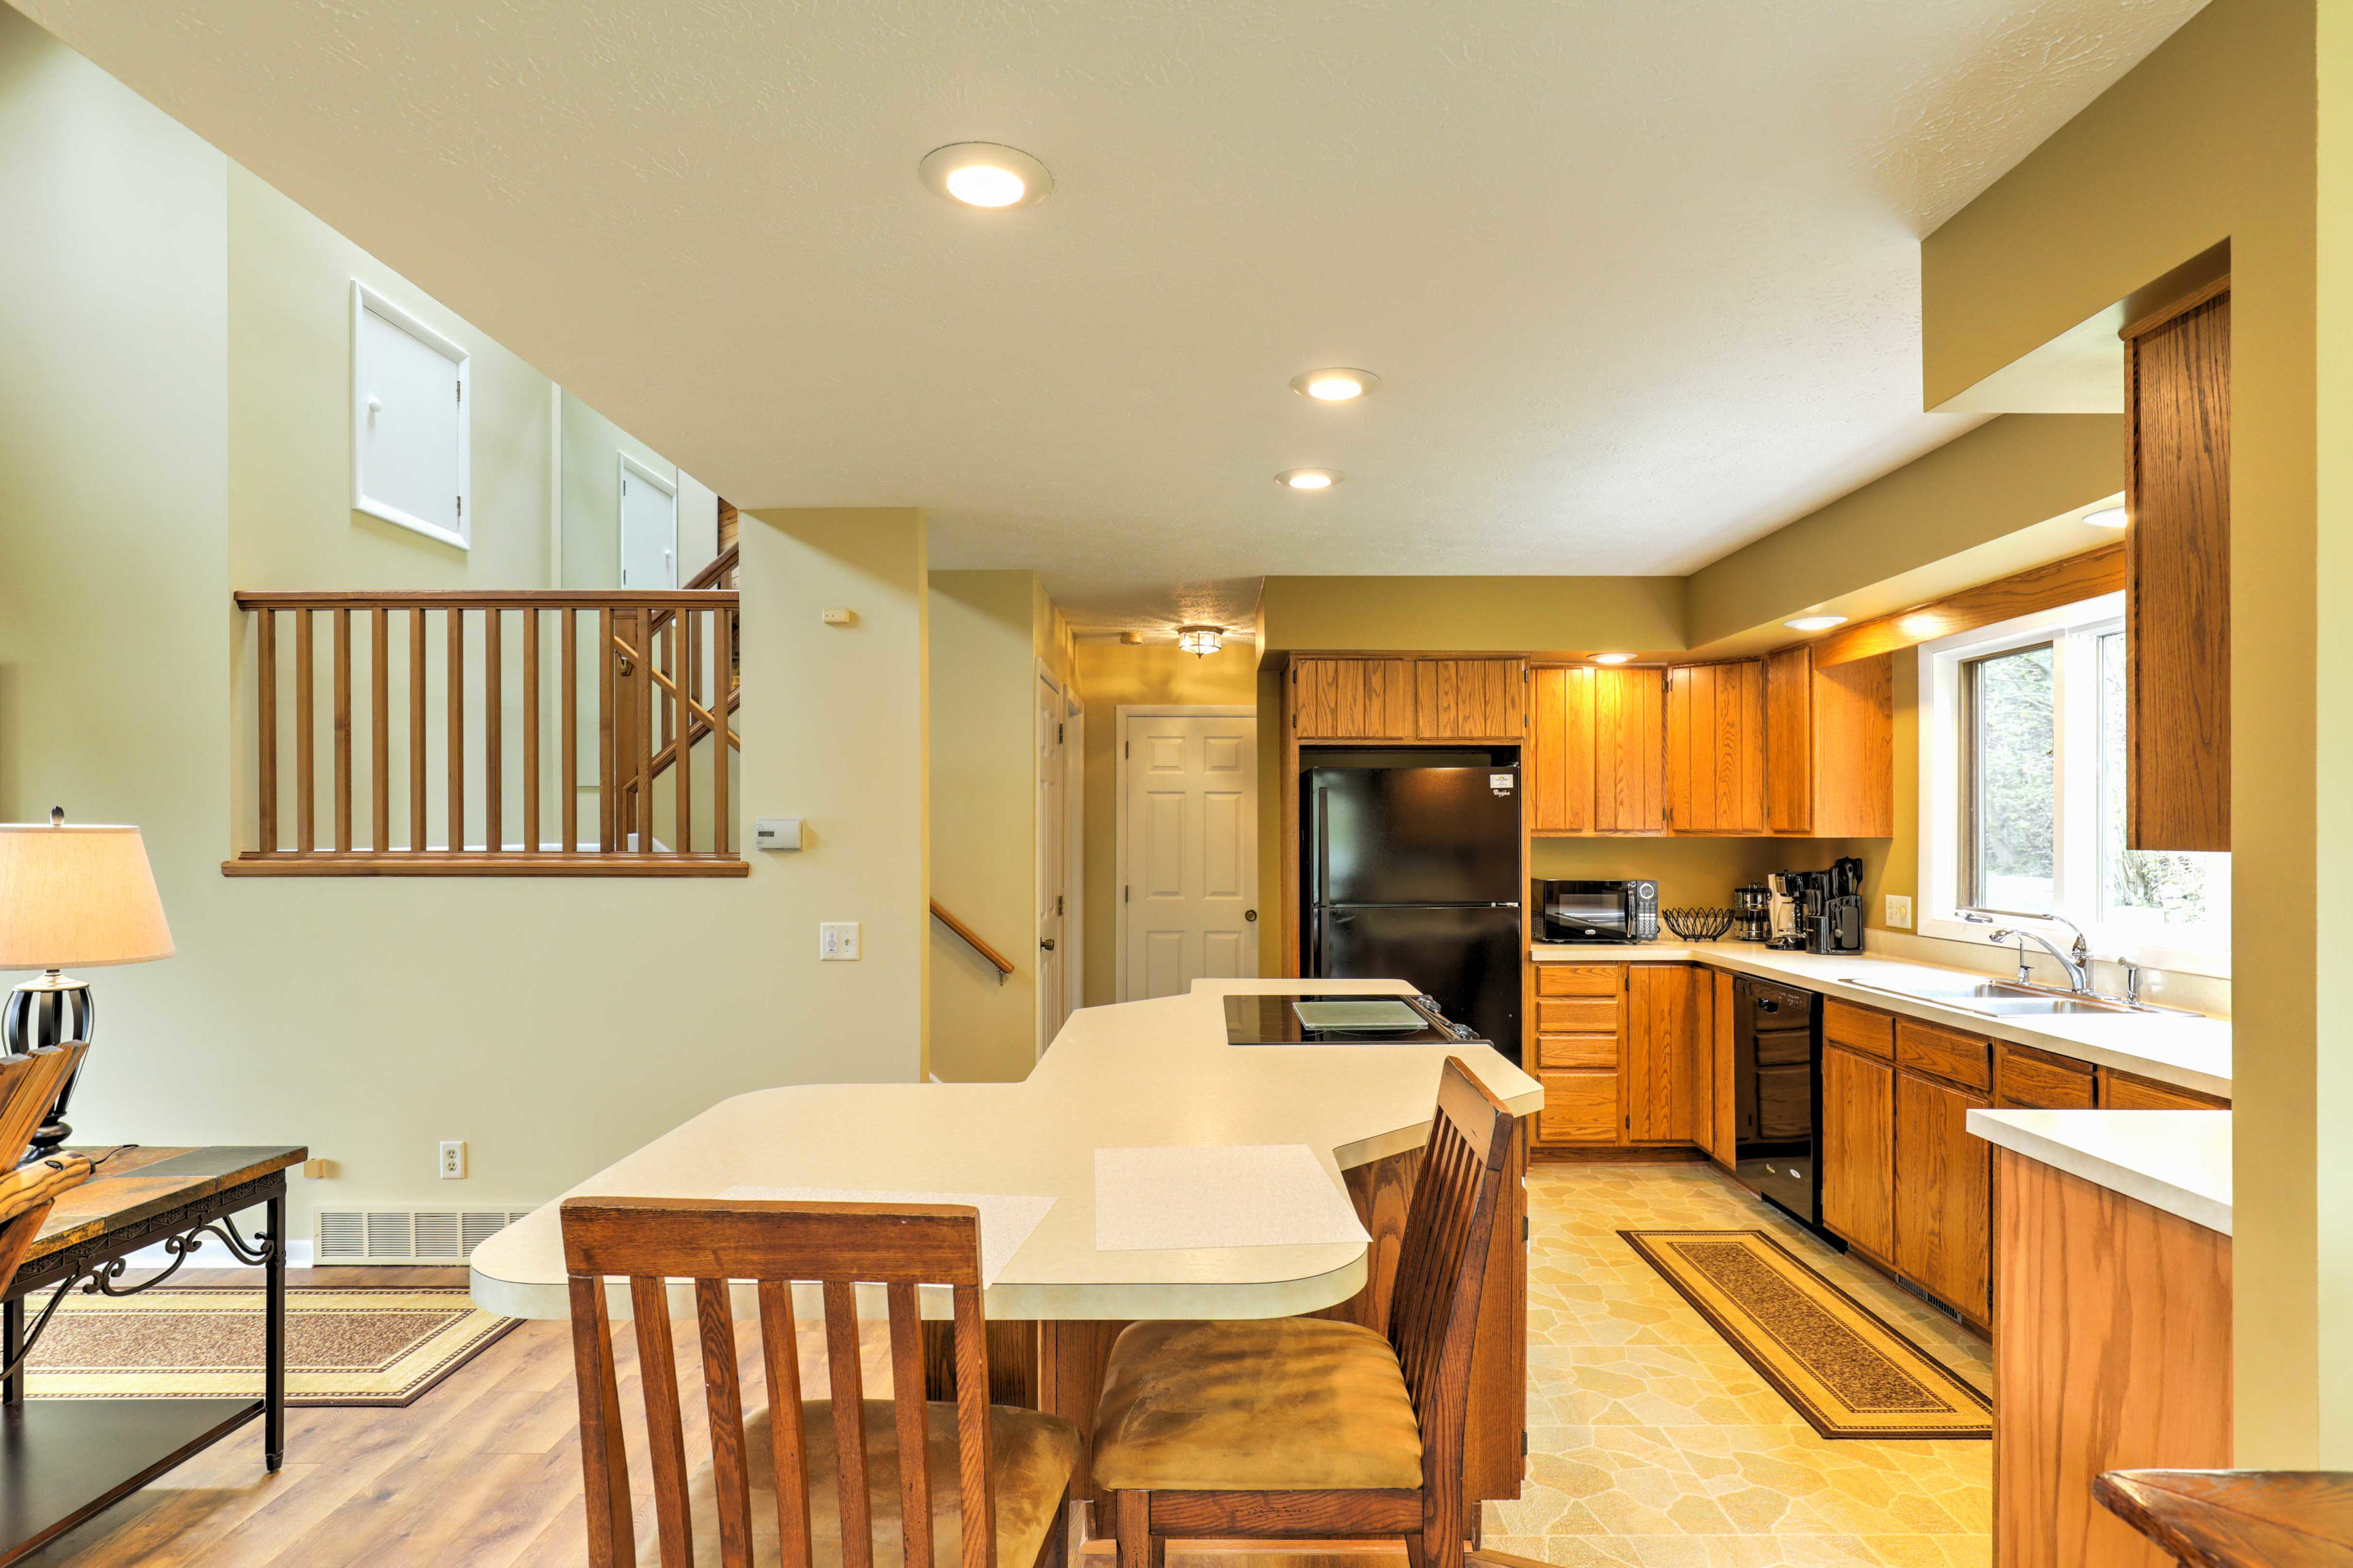 The open kitchen is great for entertaining.